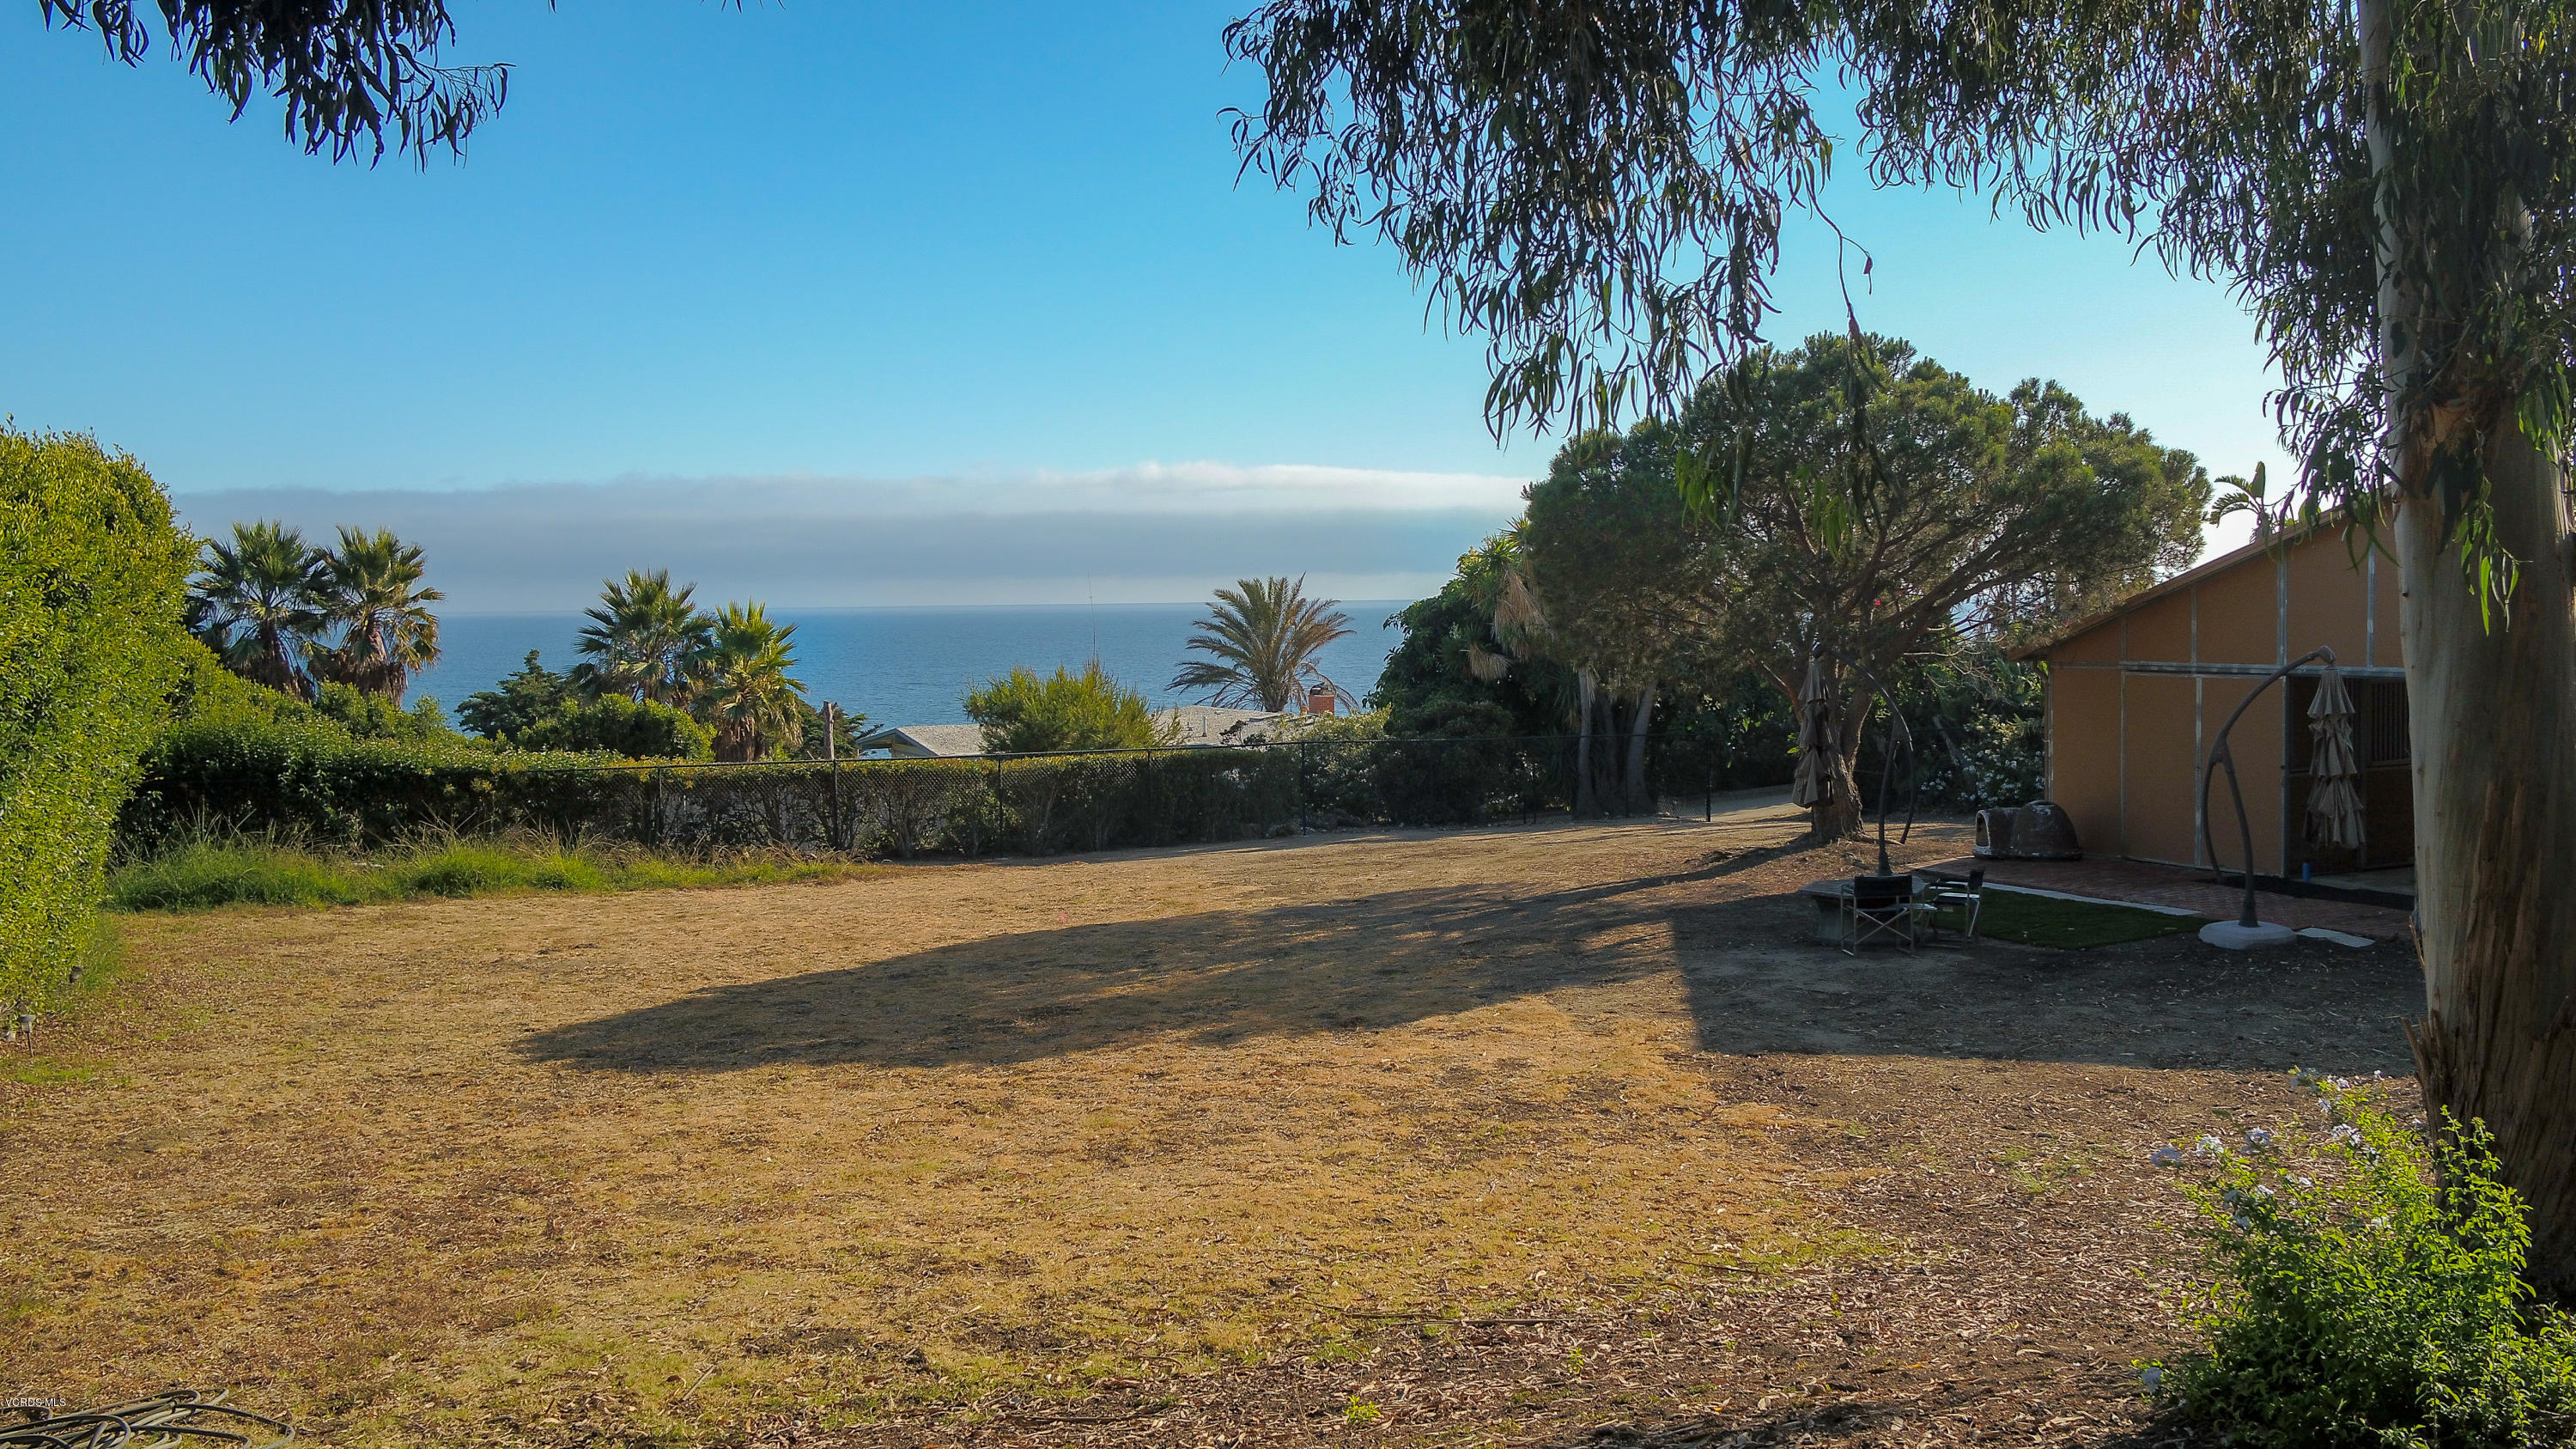 Land for Sale at 32036 Pacific Coast Highway 32036 Pacific Coast Highway Malibu, California 90265 United States